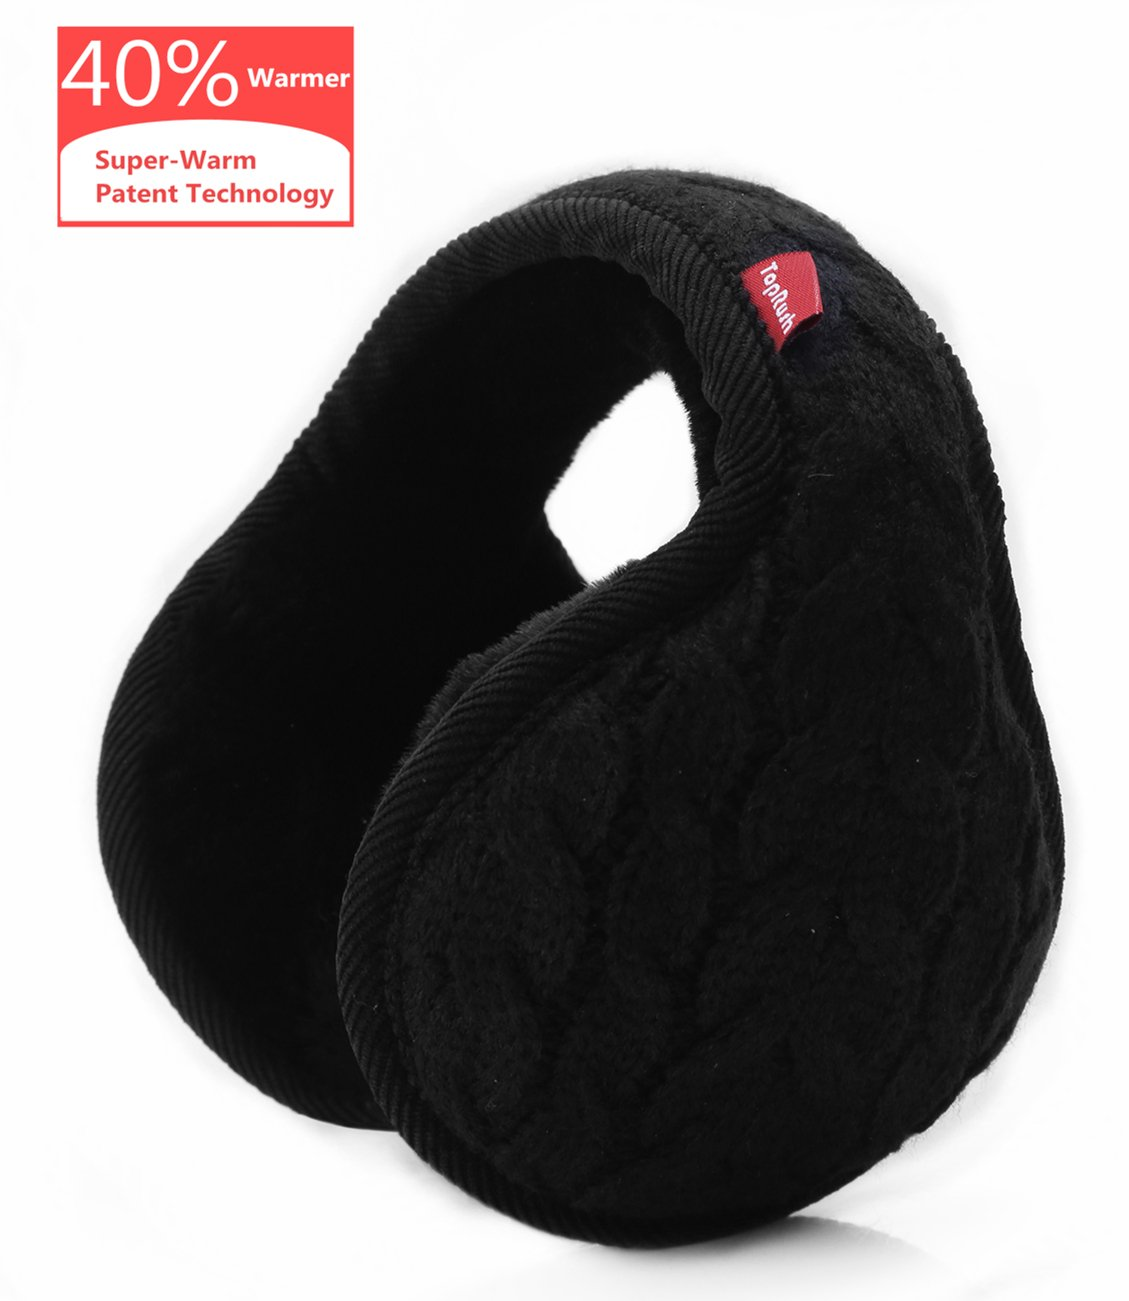 toprush折りたたみ式Ear Warmers /耳マフ – high-class防風フリース冬Earmuffs forメンズレディース&キッズ B077WS81KR Adjustable|1 Knitting Black 1 Knitting Black Adjustable